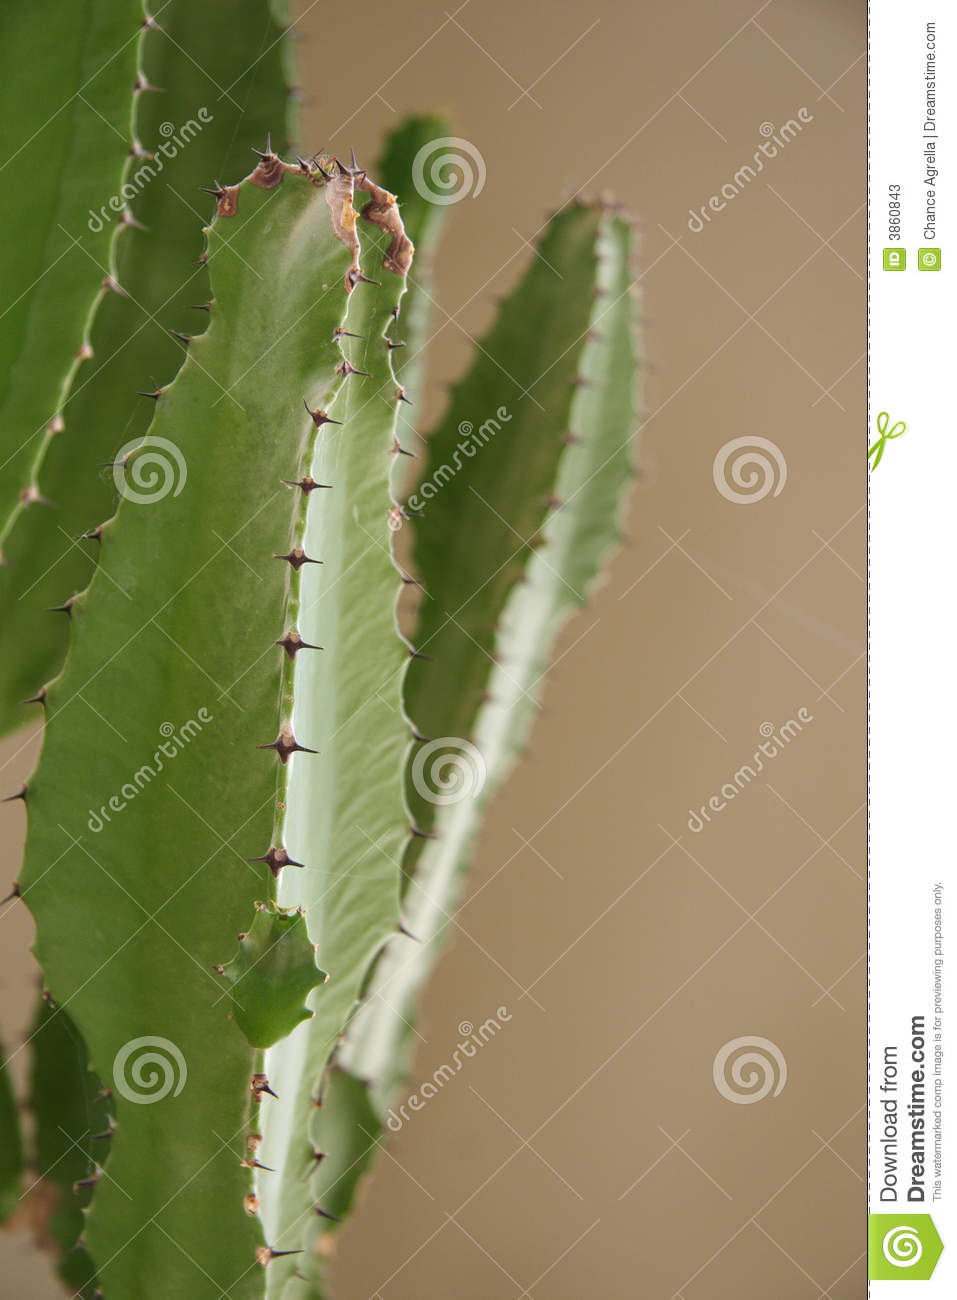 thorns on an indoor cactus stock photos